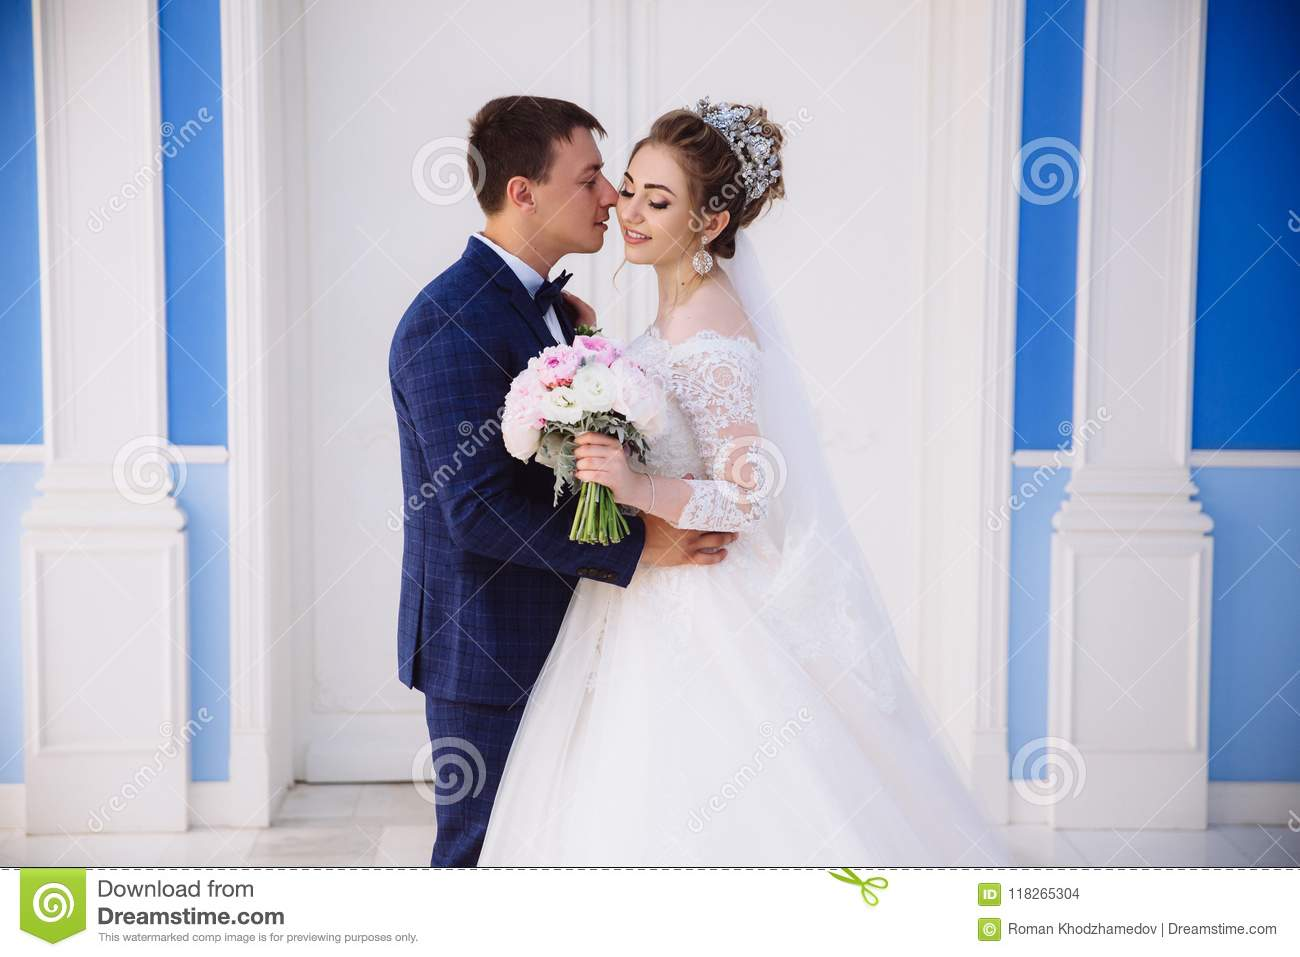 A portrait of the bride and groom who will soon become husband and wife. A man in a stylish suit hugs the girl at the